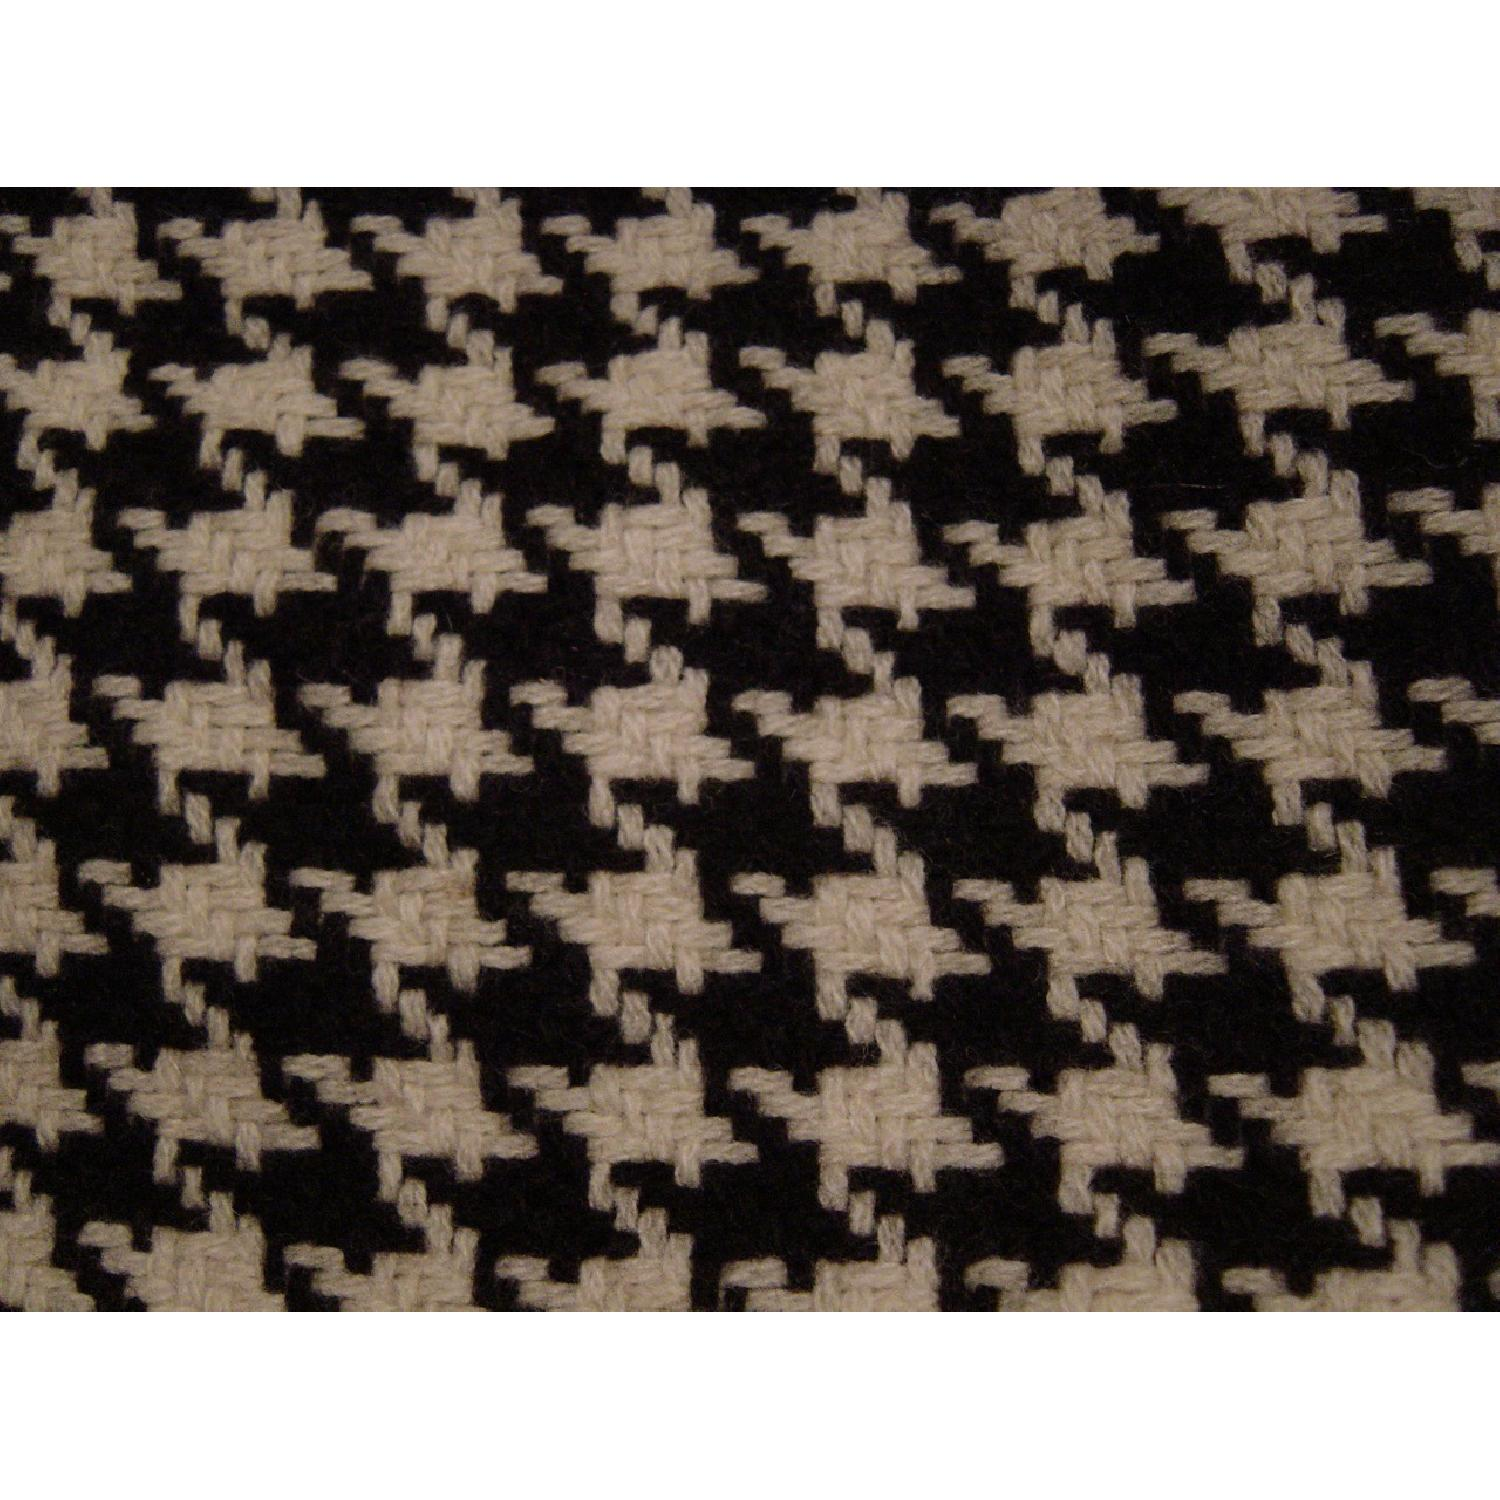 Houndstooth Upholstered Ottomans-1